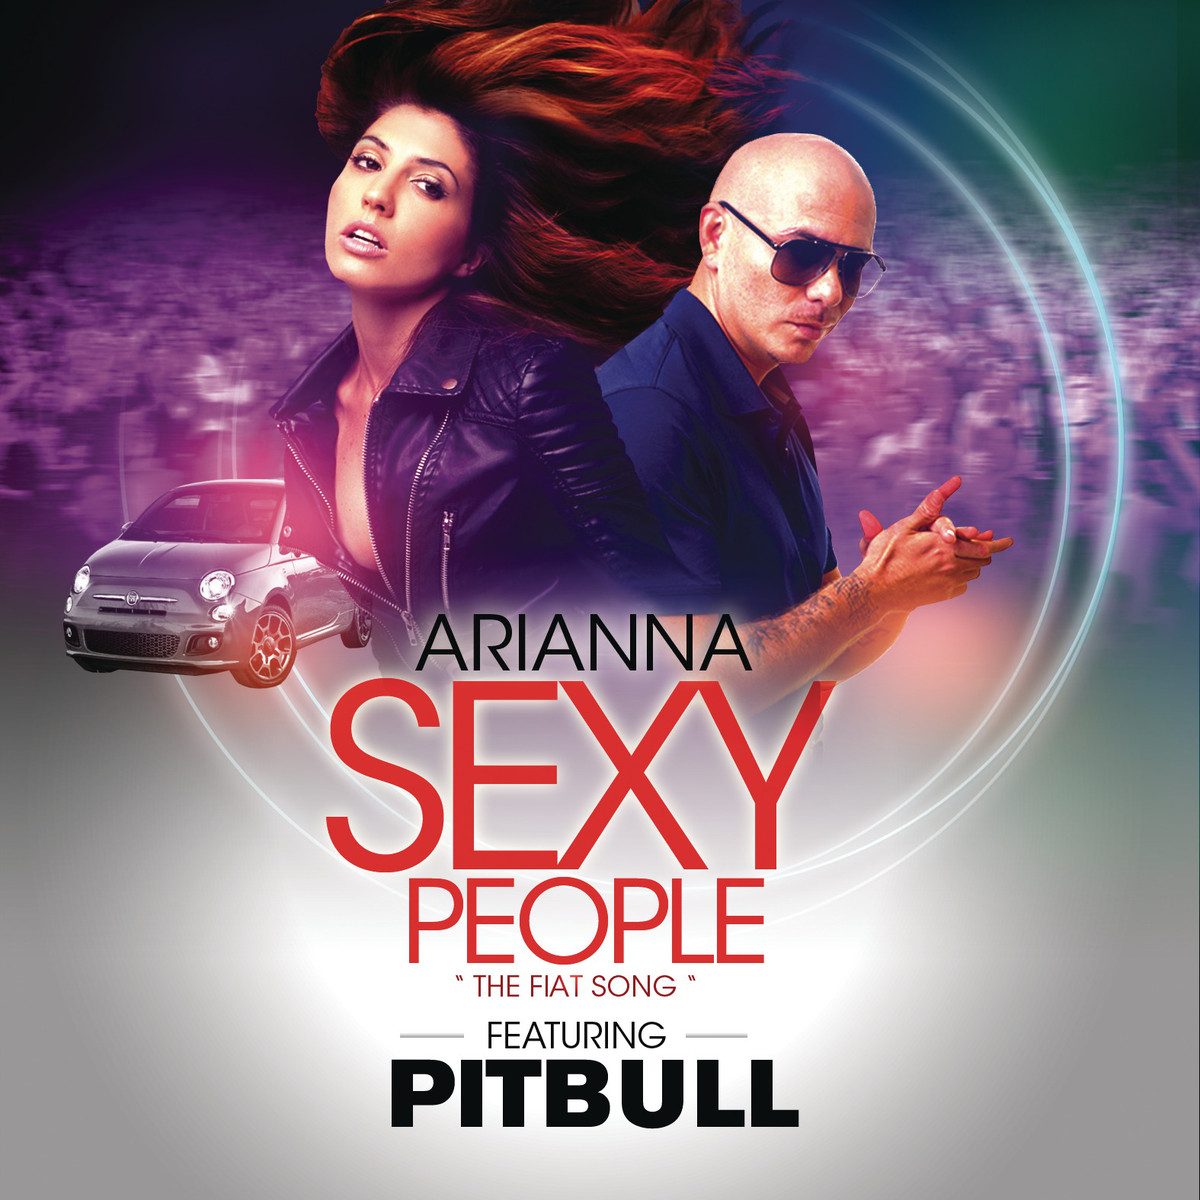 Arianna fr Pitbull sexy people